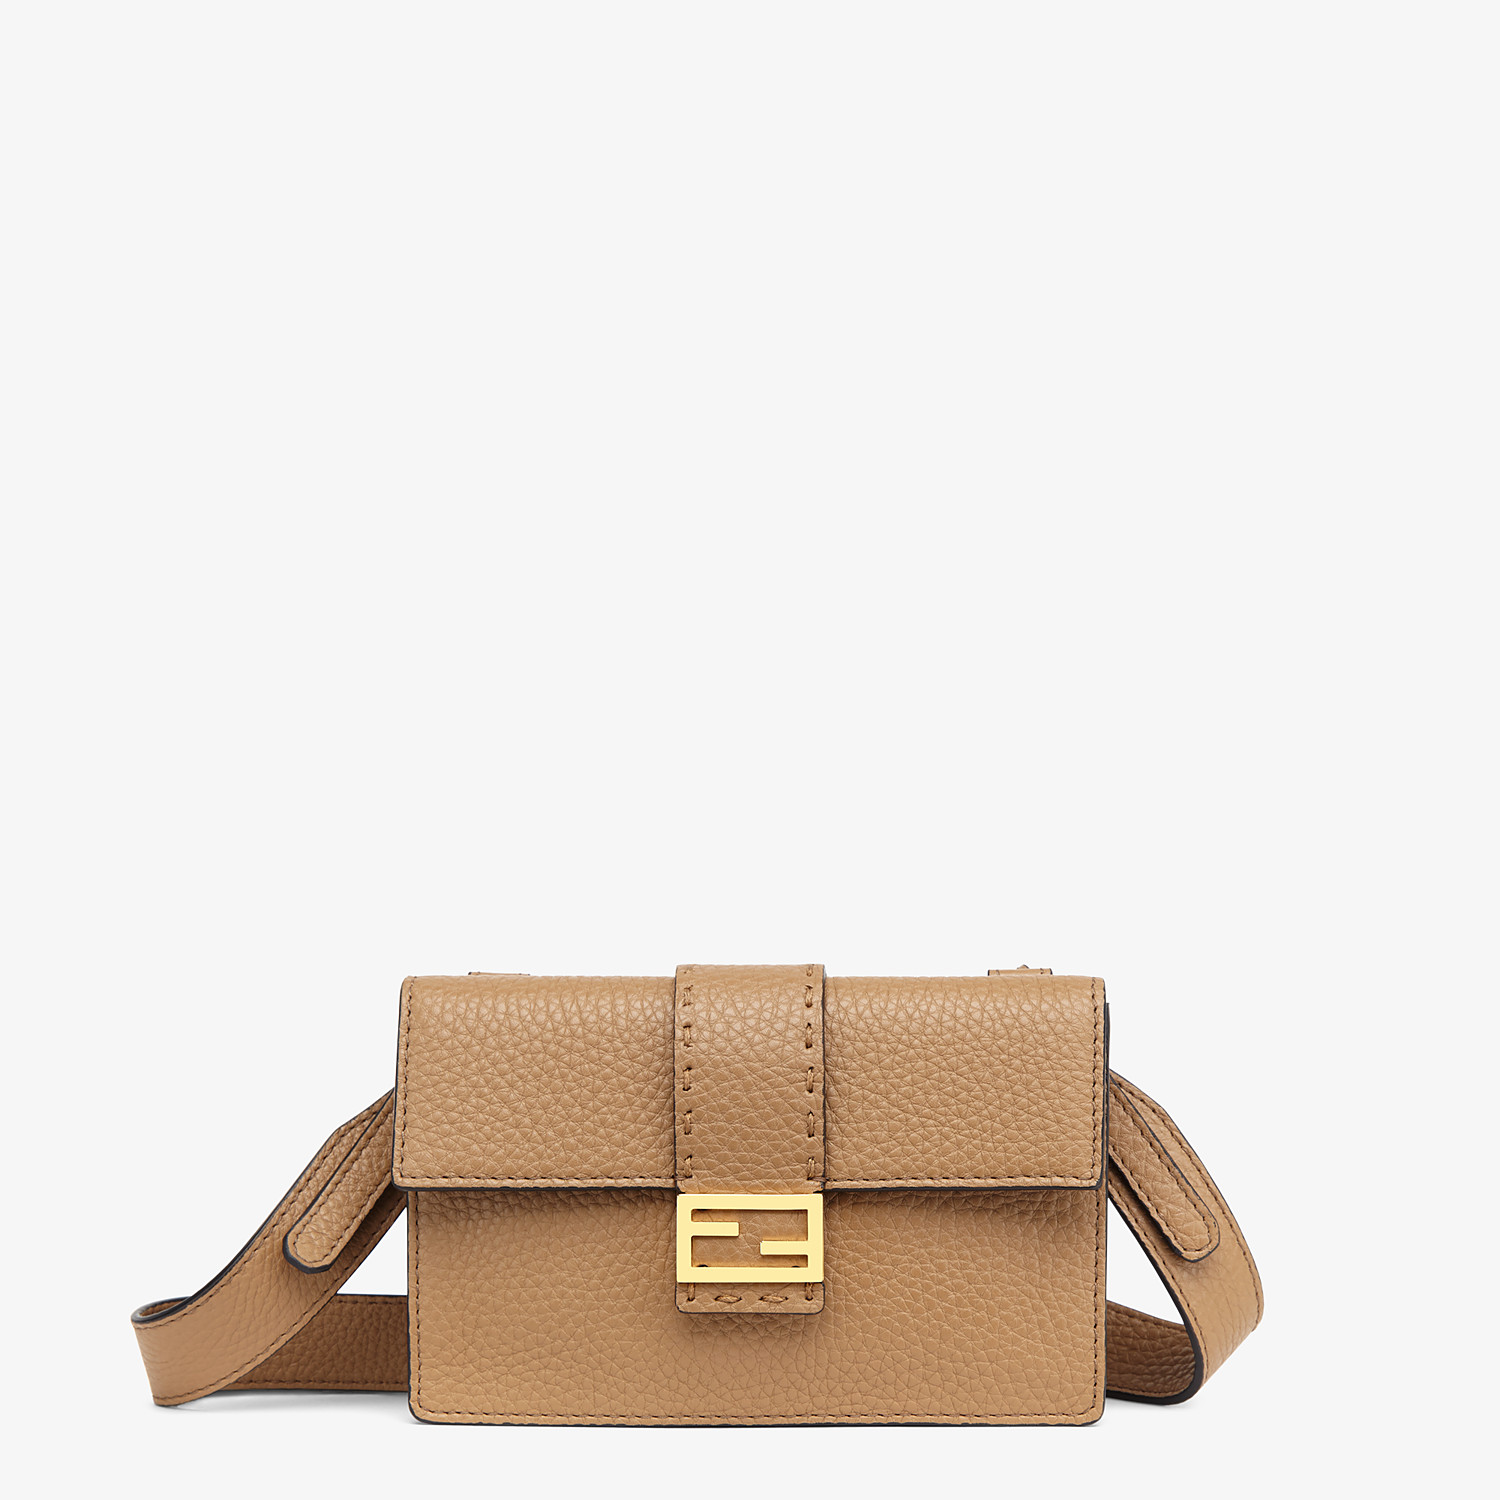 FENDI BAGUETTE POUCH - Beige leather bag - view 1 detail